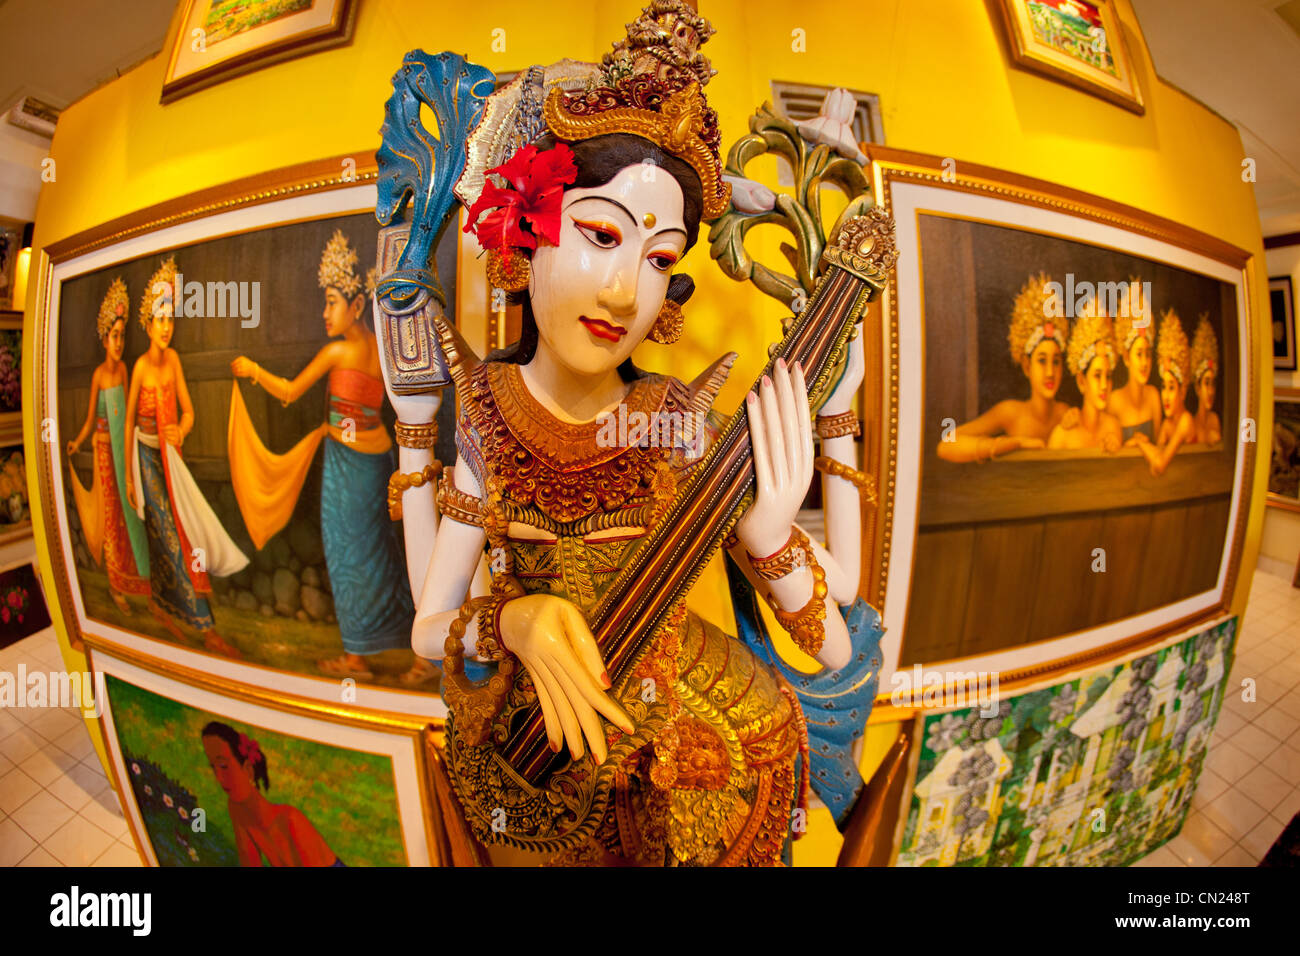 Painted statue in an art gallery Bali Indonesia - Stock Image